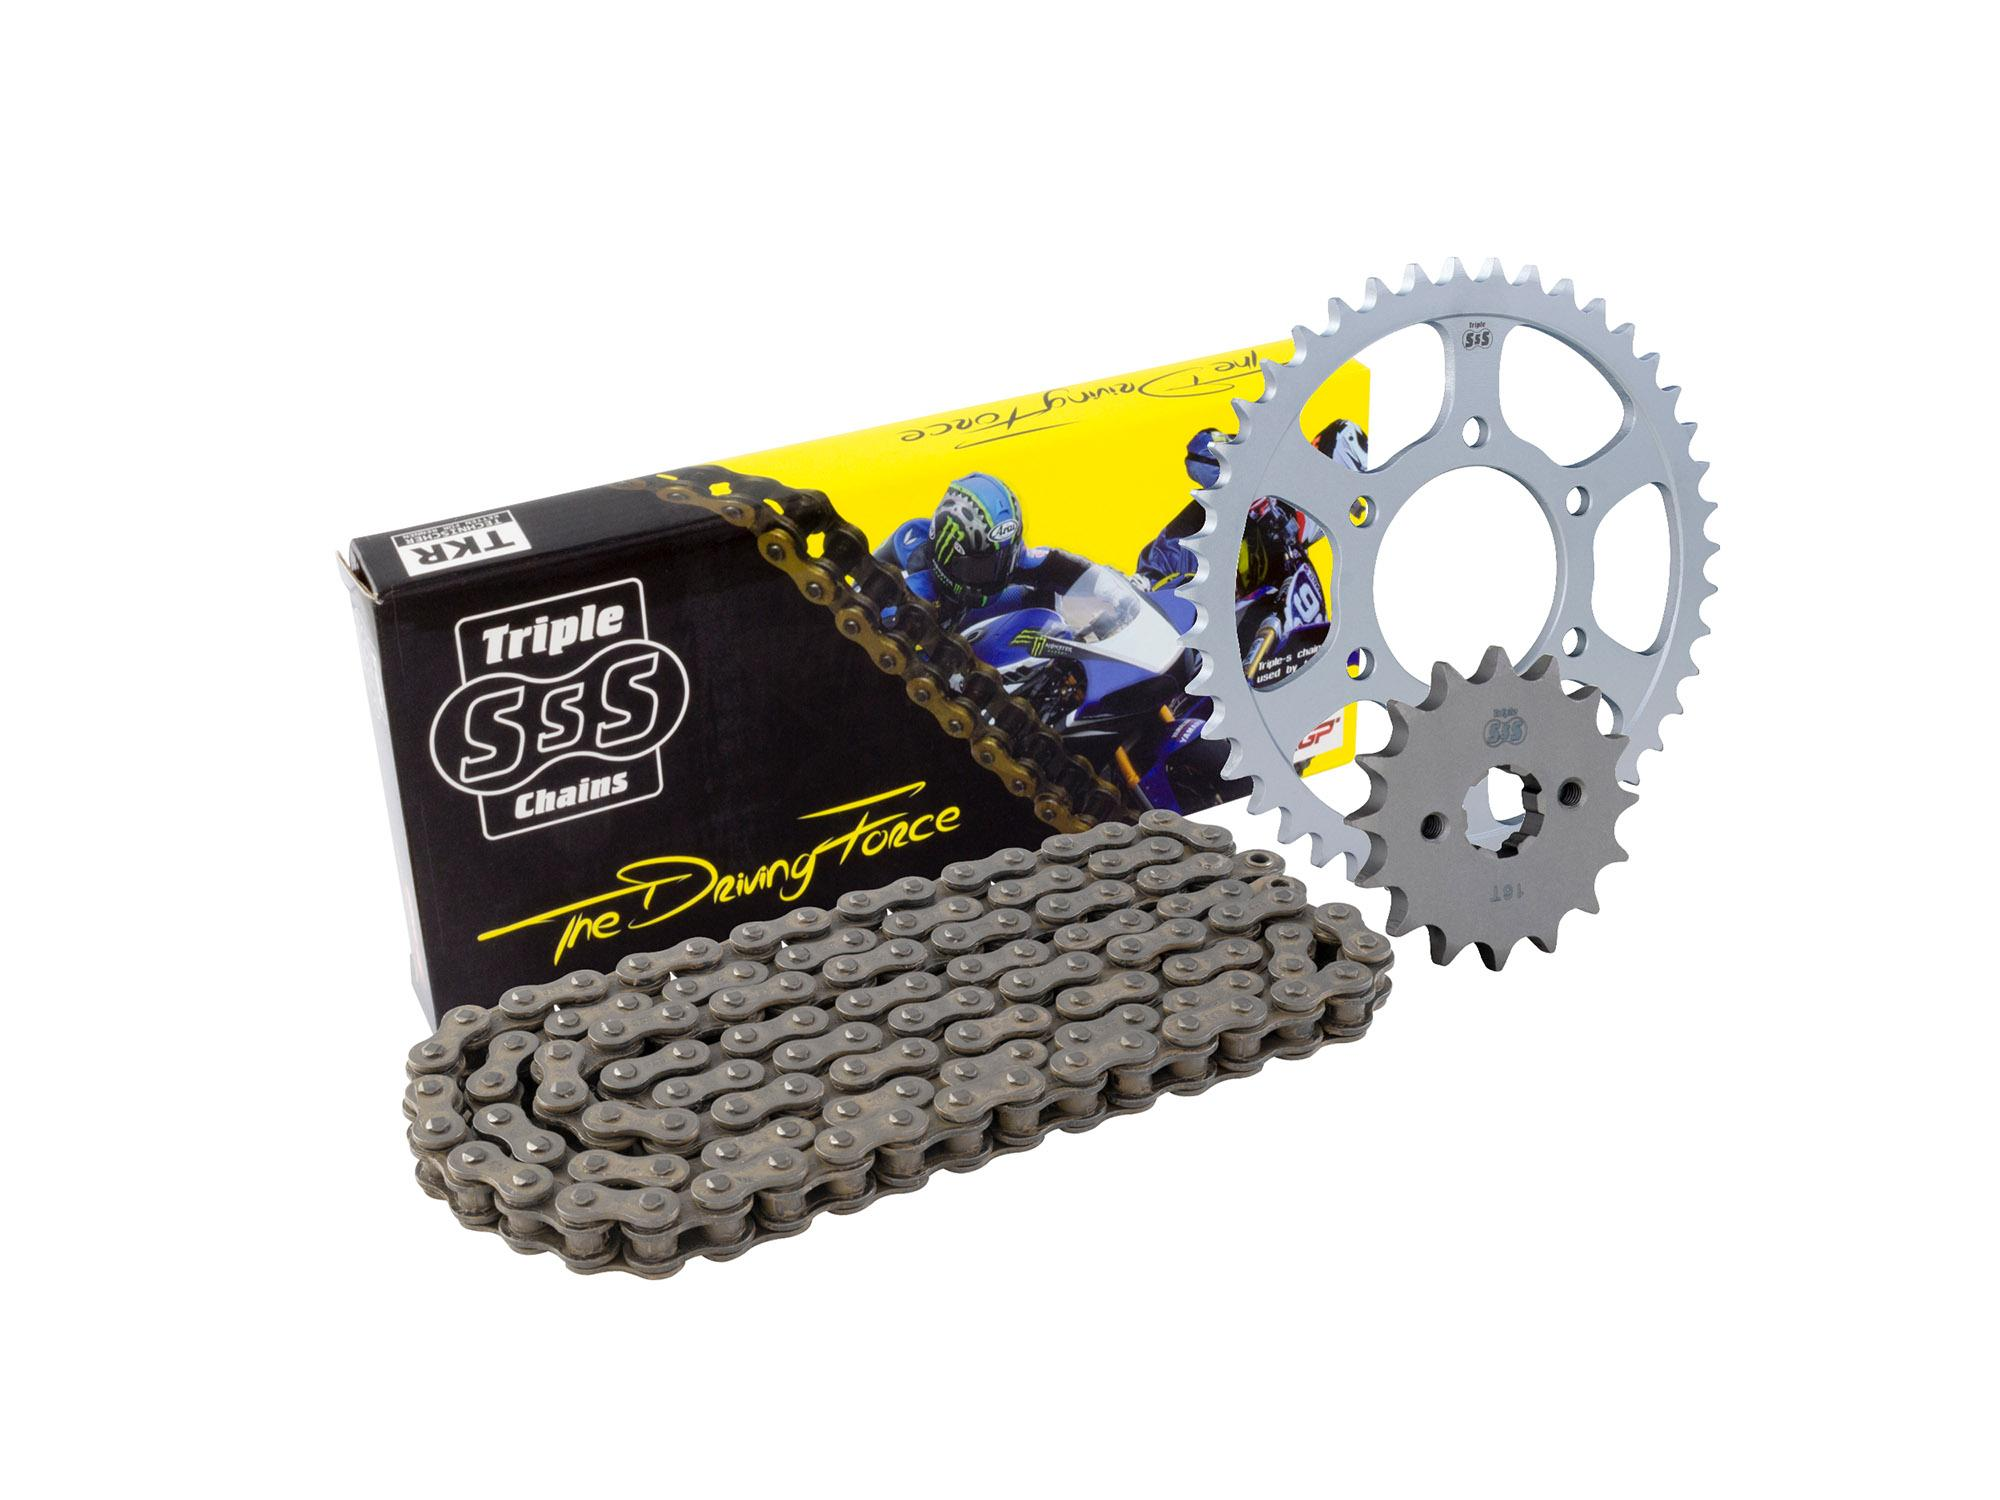 Aprilia 250 RS4 125 11-16 Chain & Sprocket Kit: 13T Front, 60T Rear, HD O-Ring Black Chain 428H 136Link